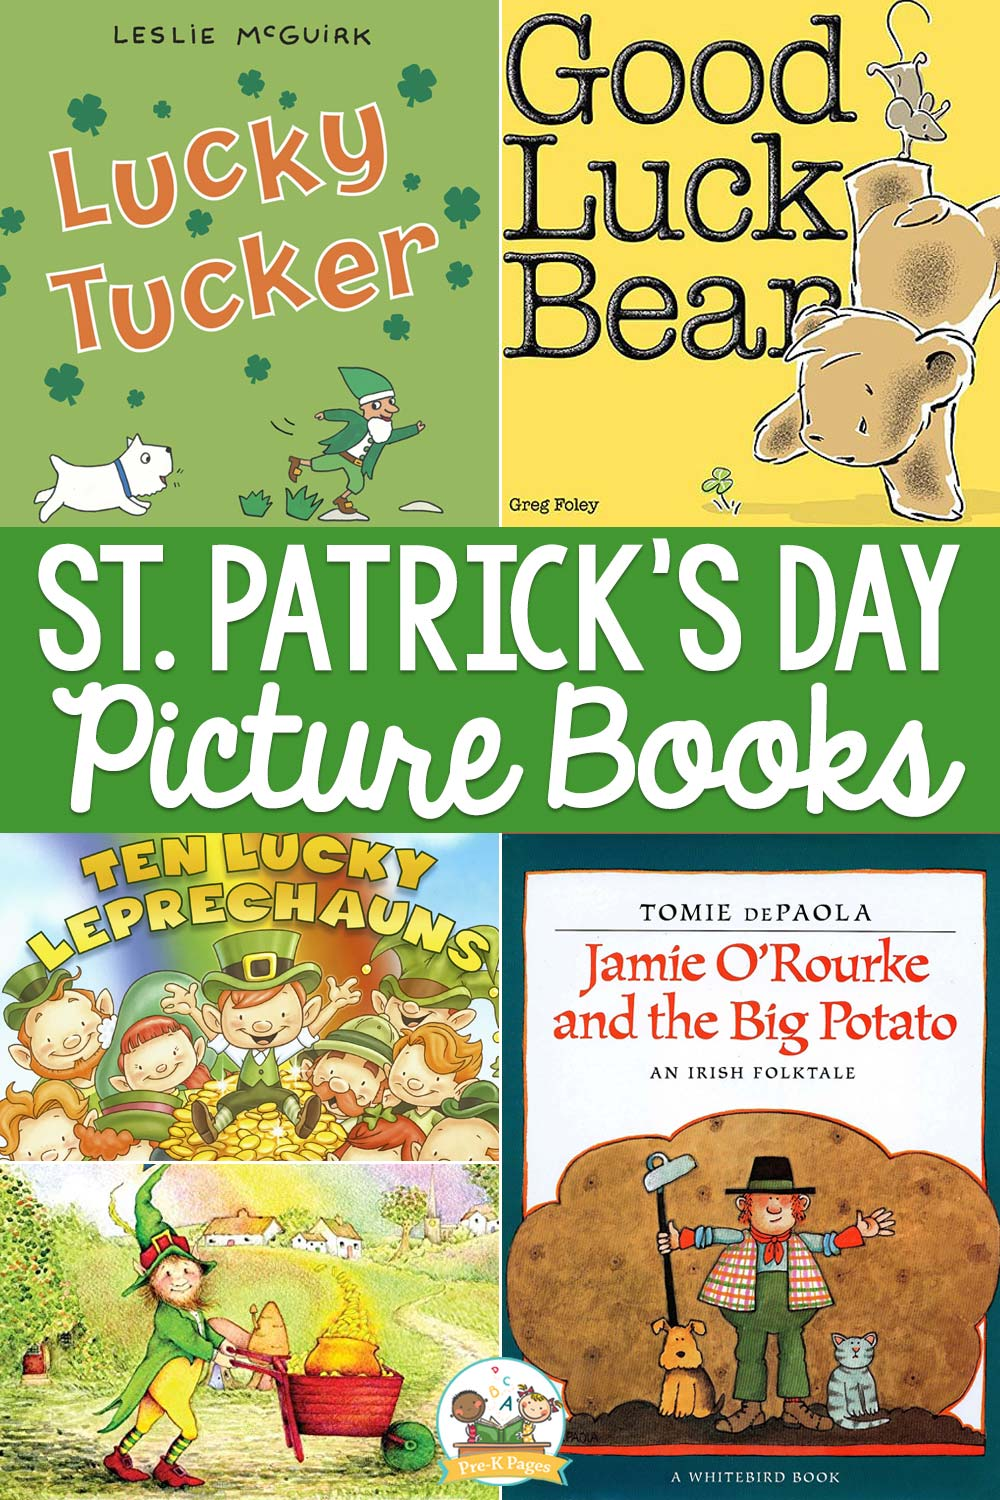 St. Patrick's Day picture book